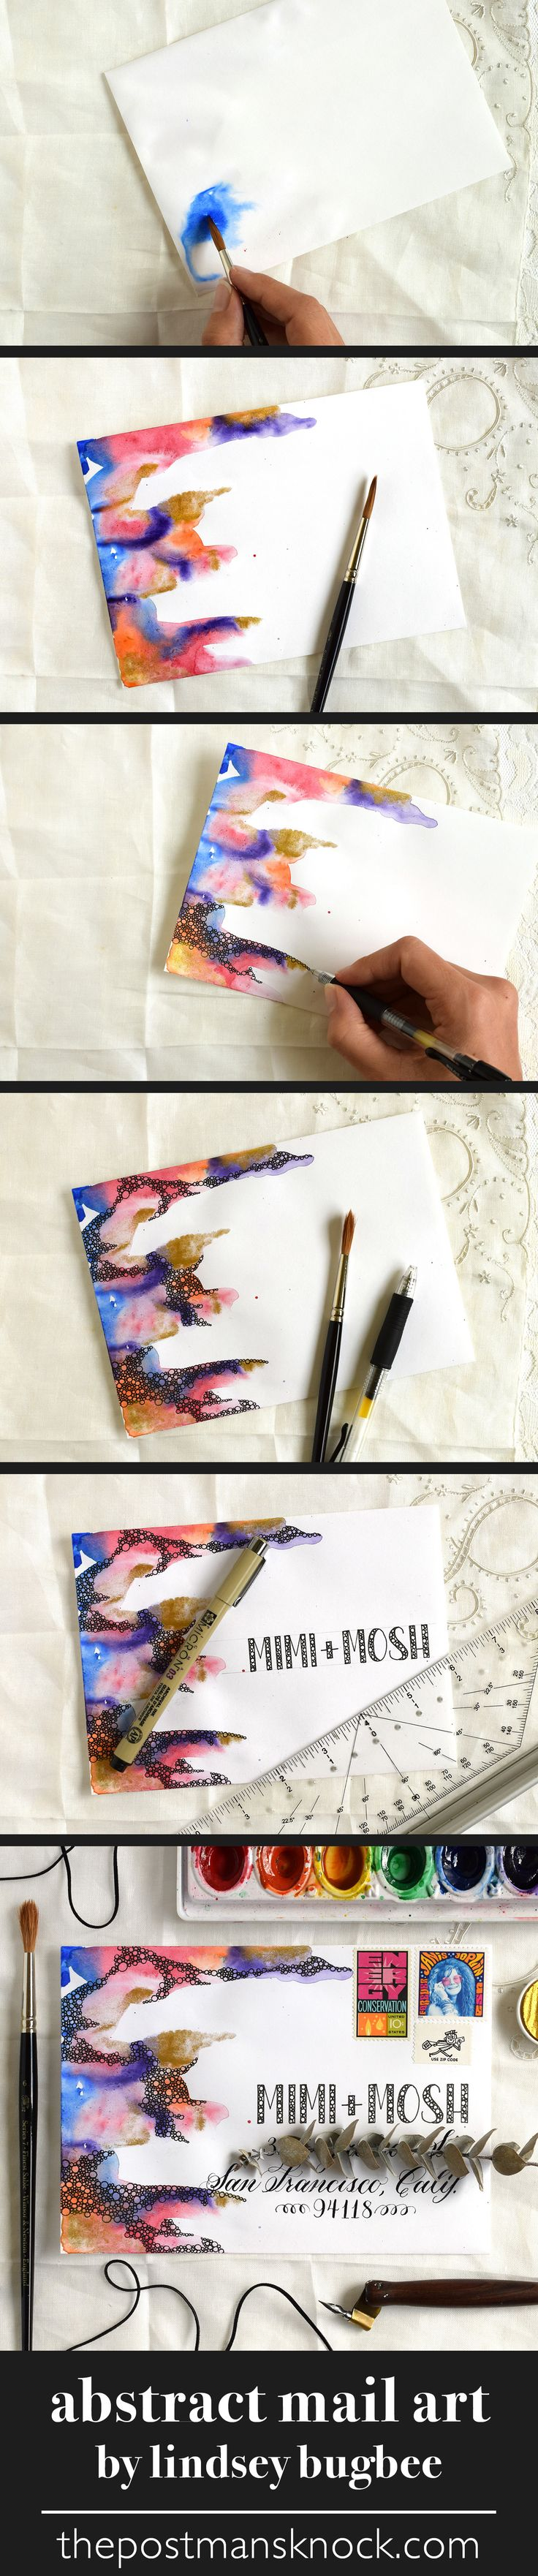 Funky, colorful abstract mail art made with watercolor + a gel pen by Lindsey Bugbee